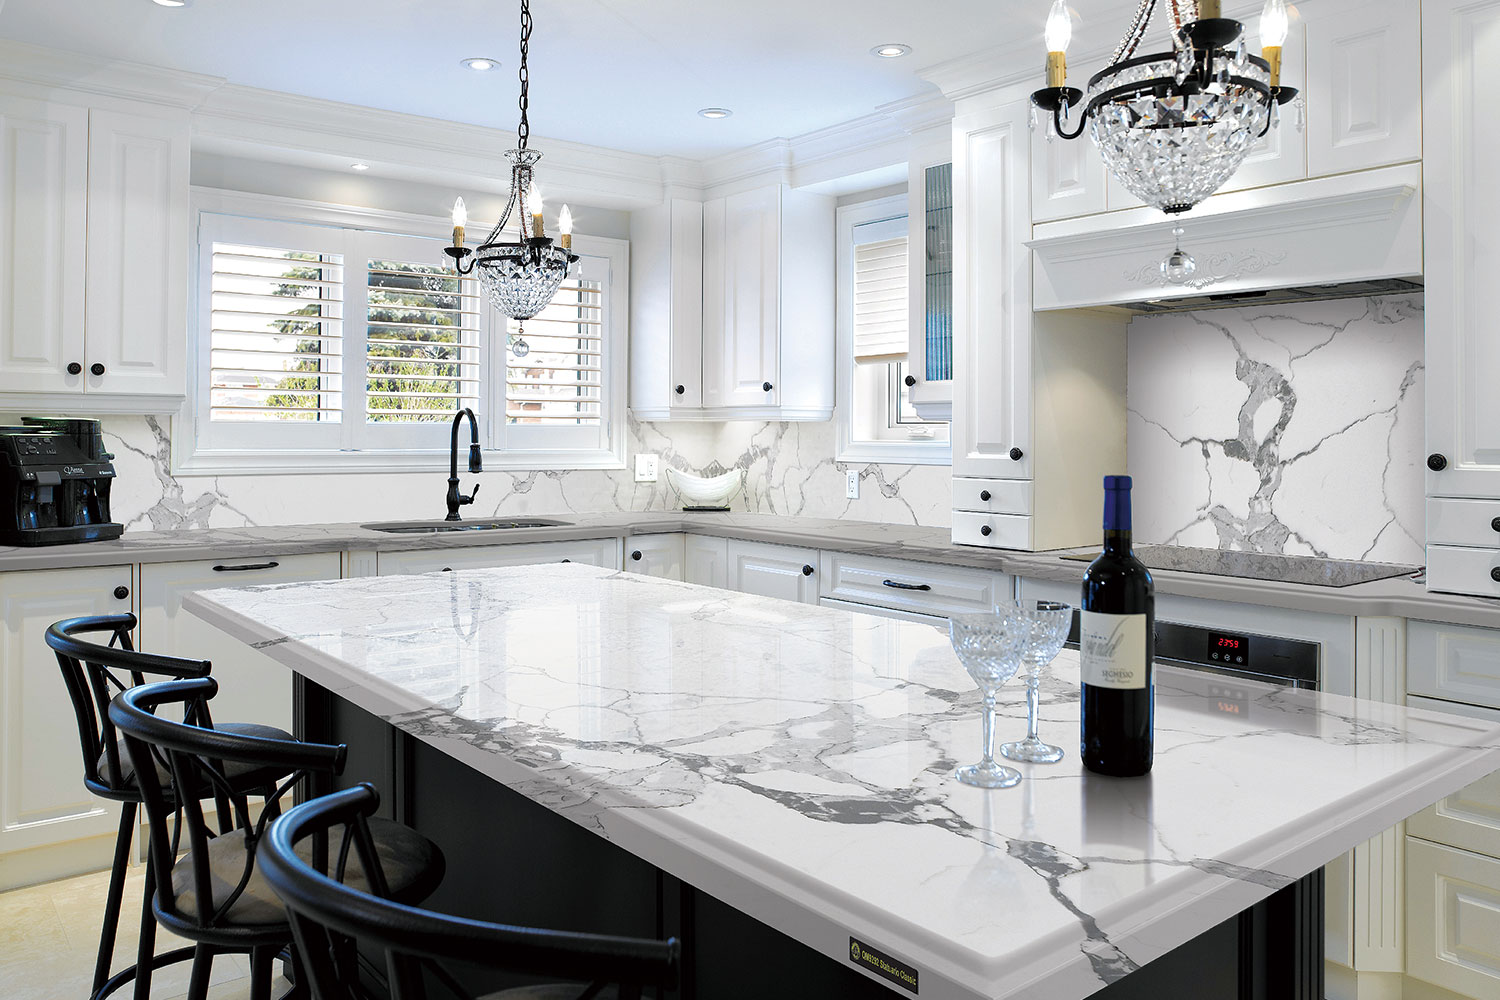 Chipped Quartz Countertop Repair Keystone Rental Places Rental Options In Keystone